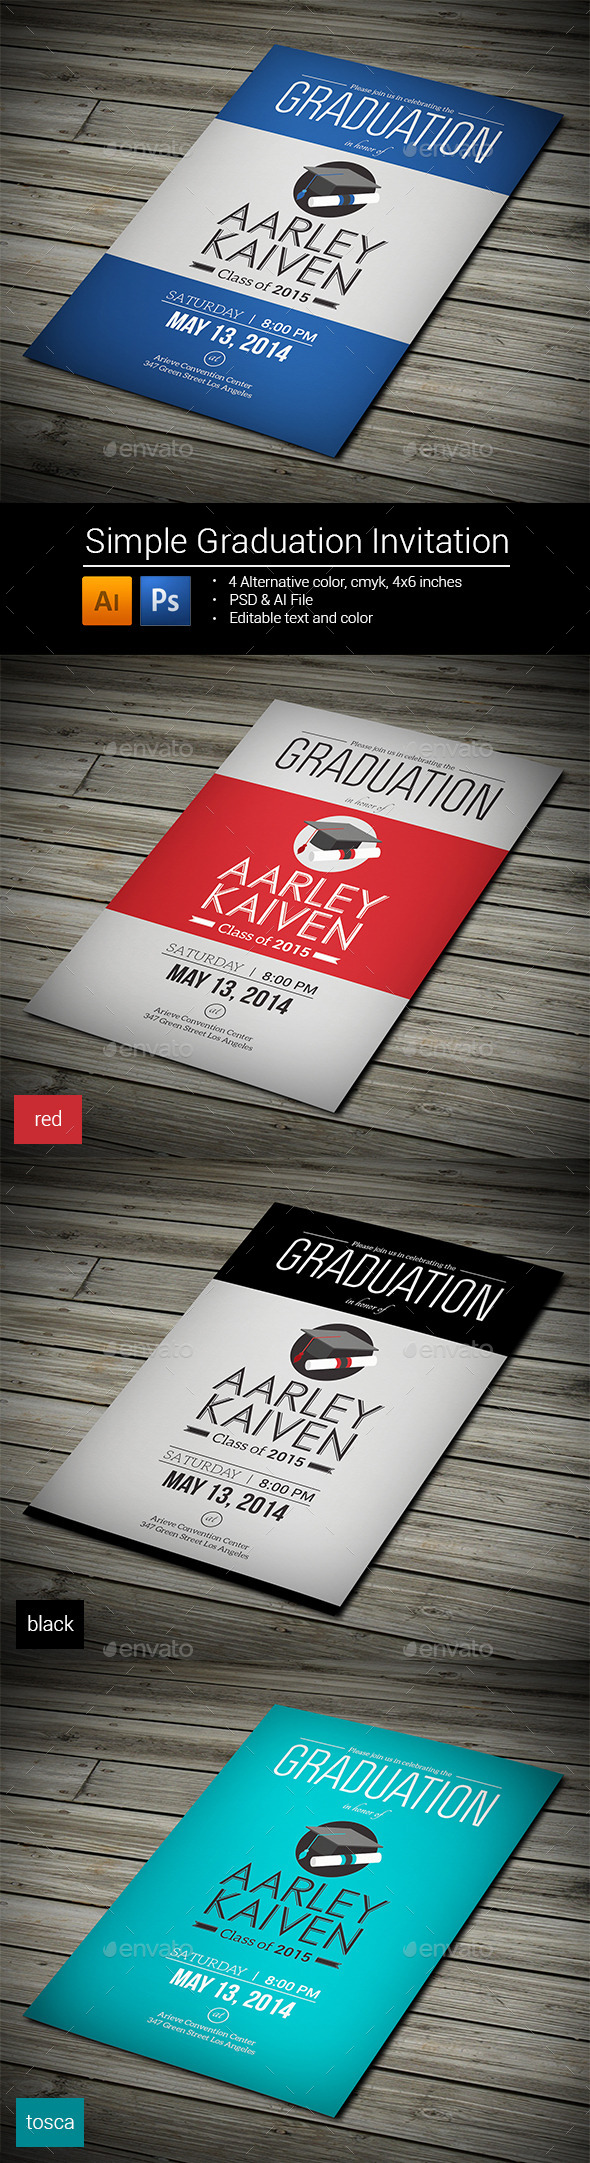 Simple Graduation Invitation - Invitations Cards & Invites